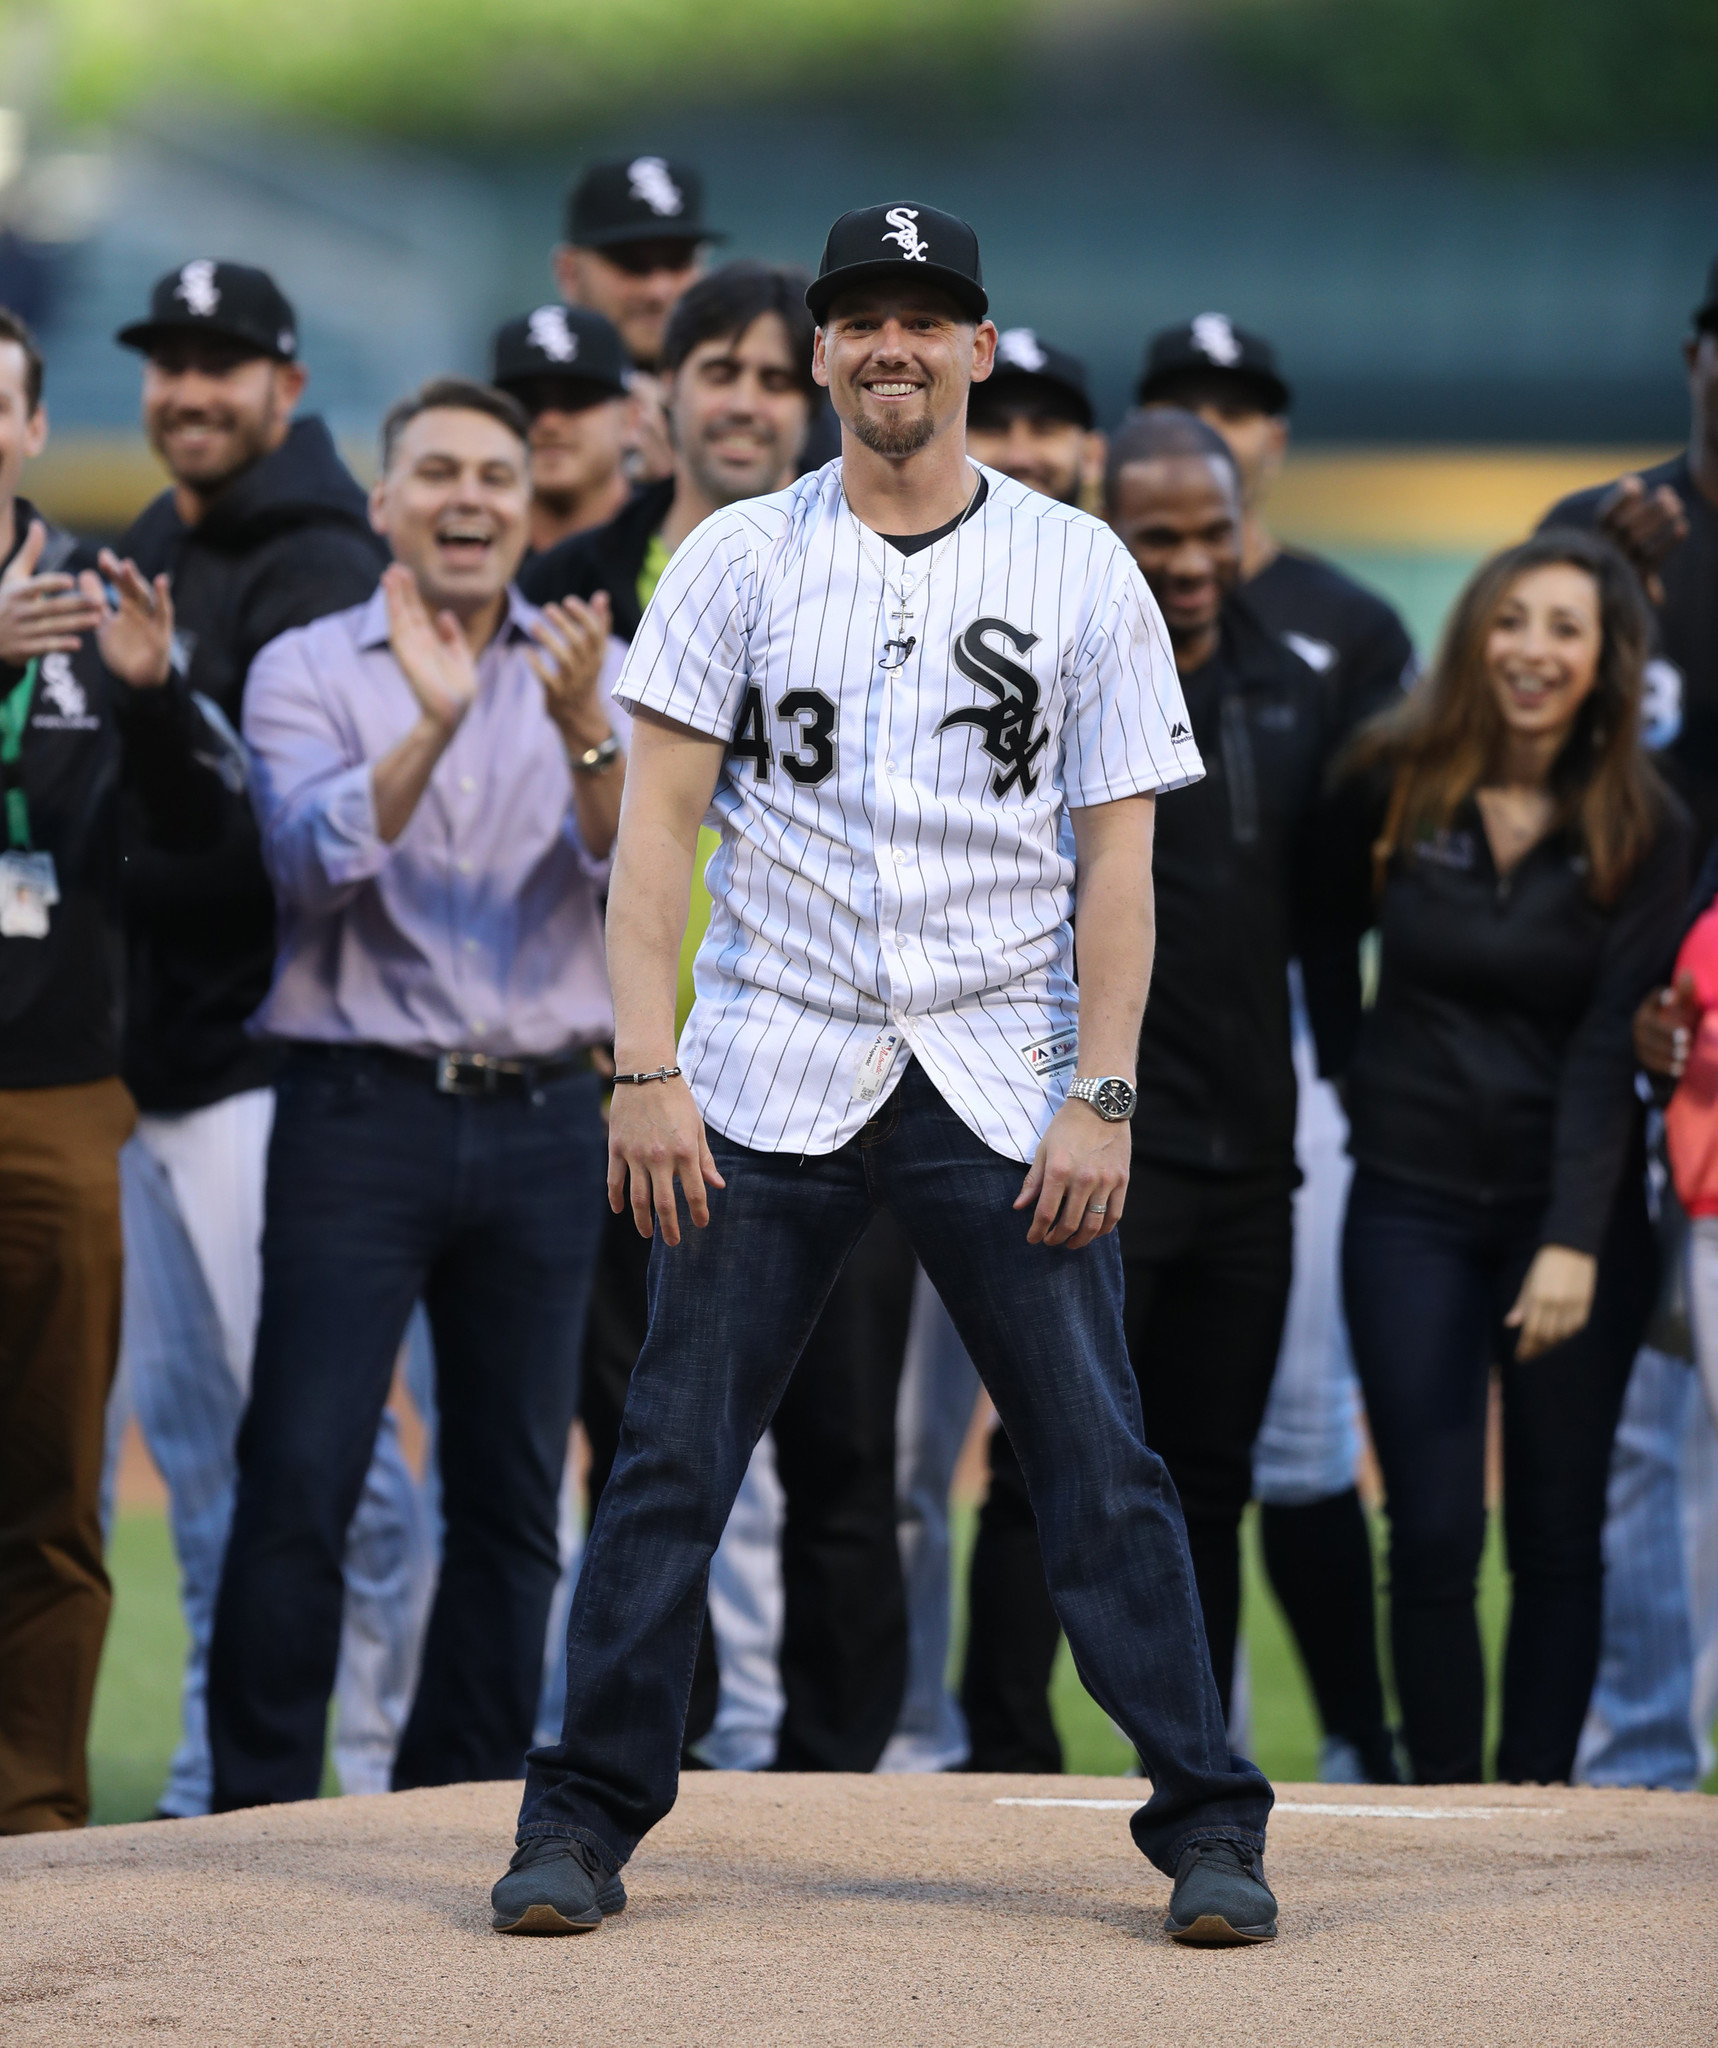 Danny Farquhar, who suffered a brain hemorrhage during a White Sox game, set to become a free agent